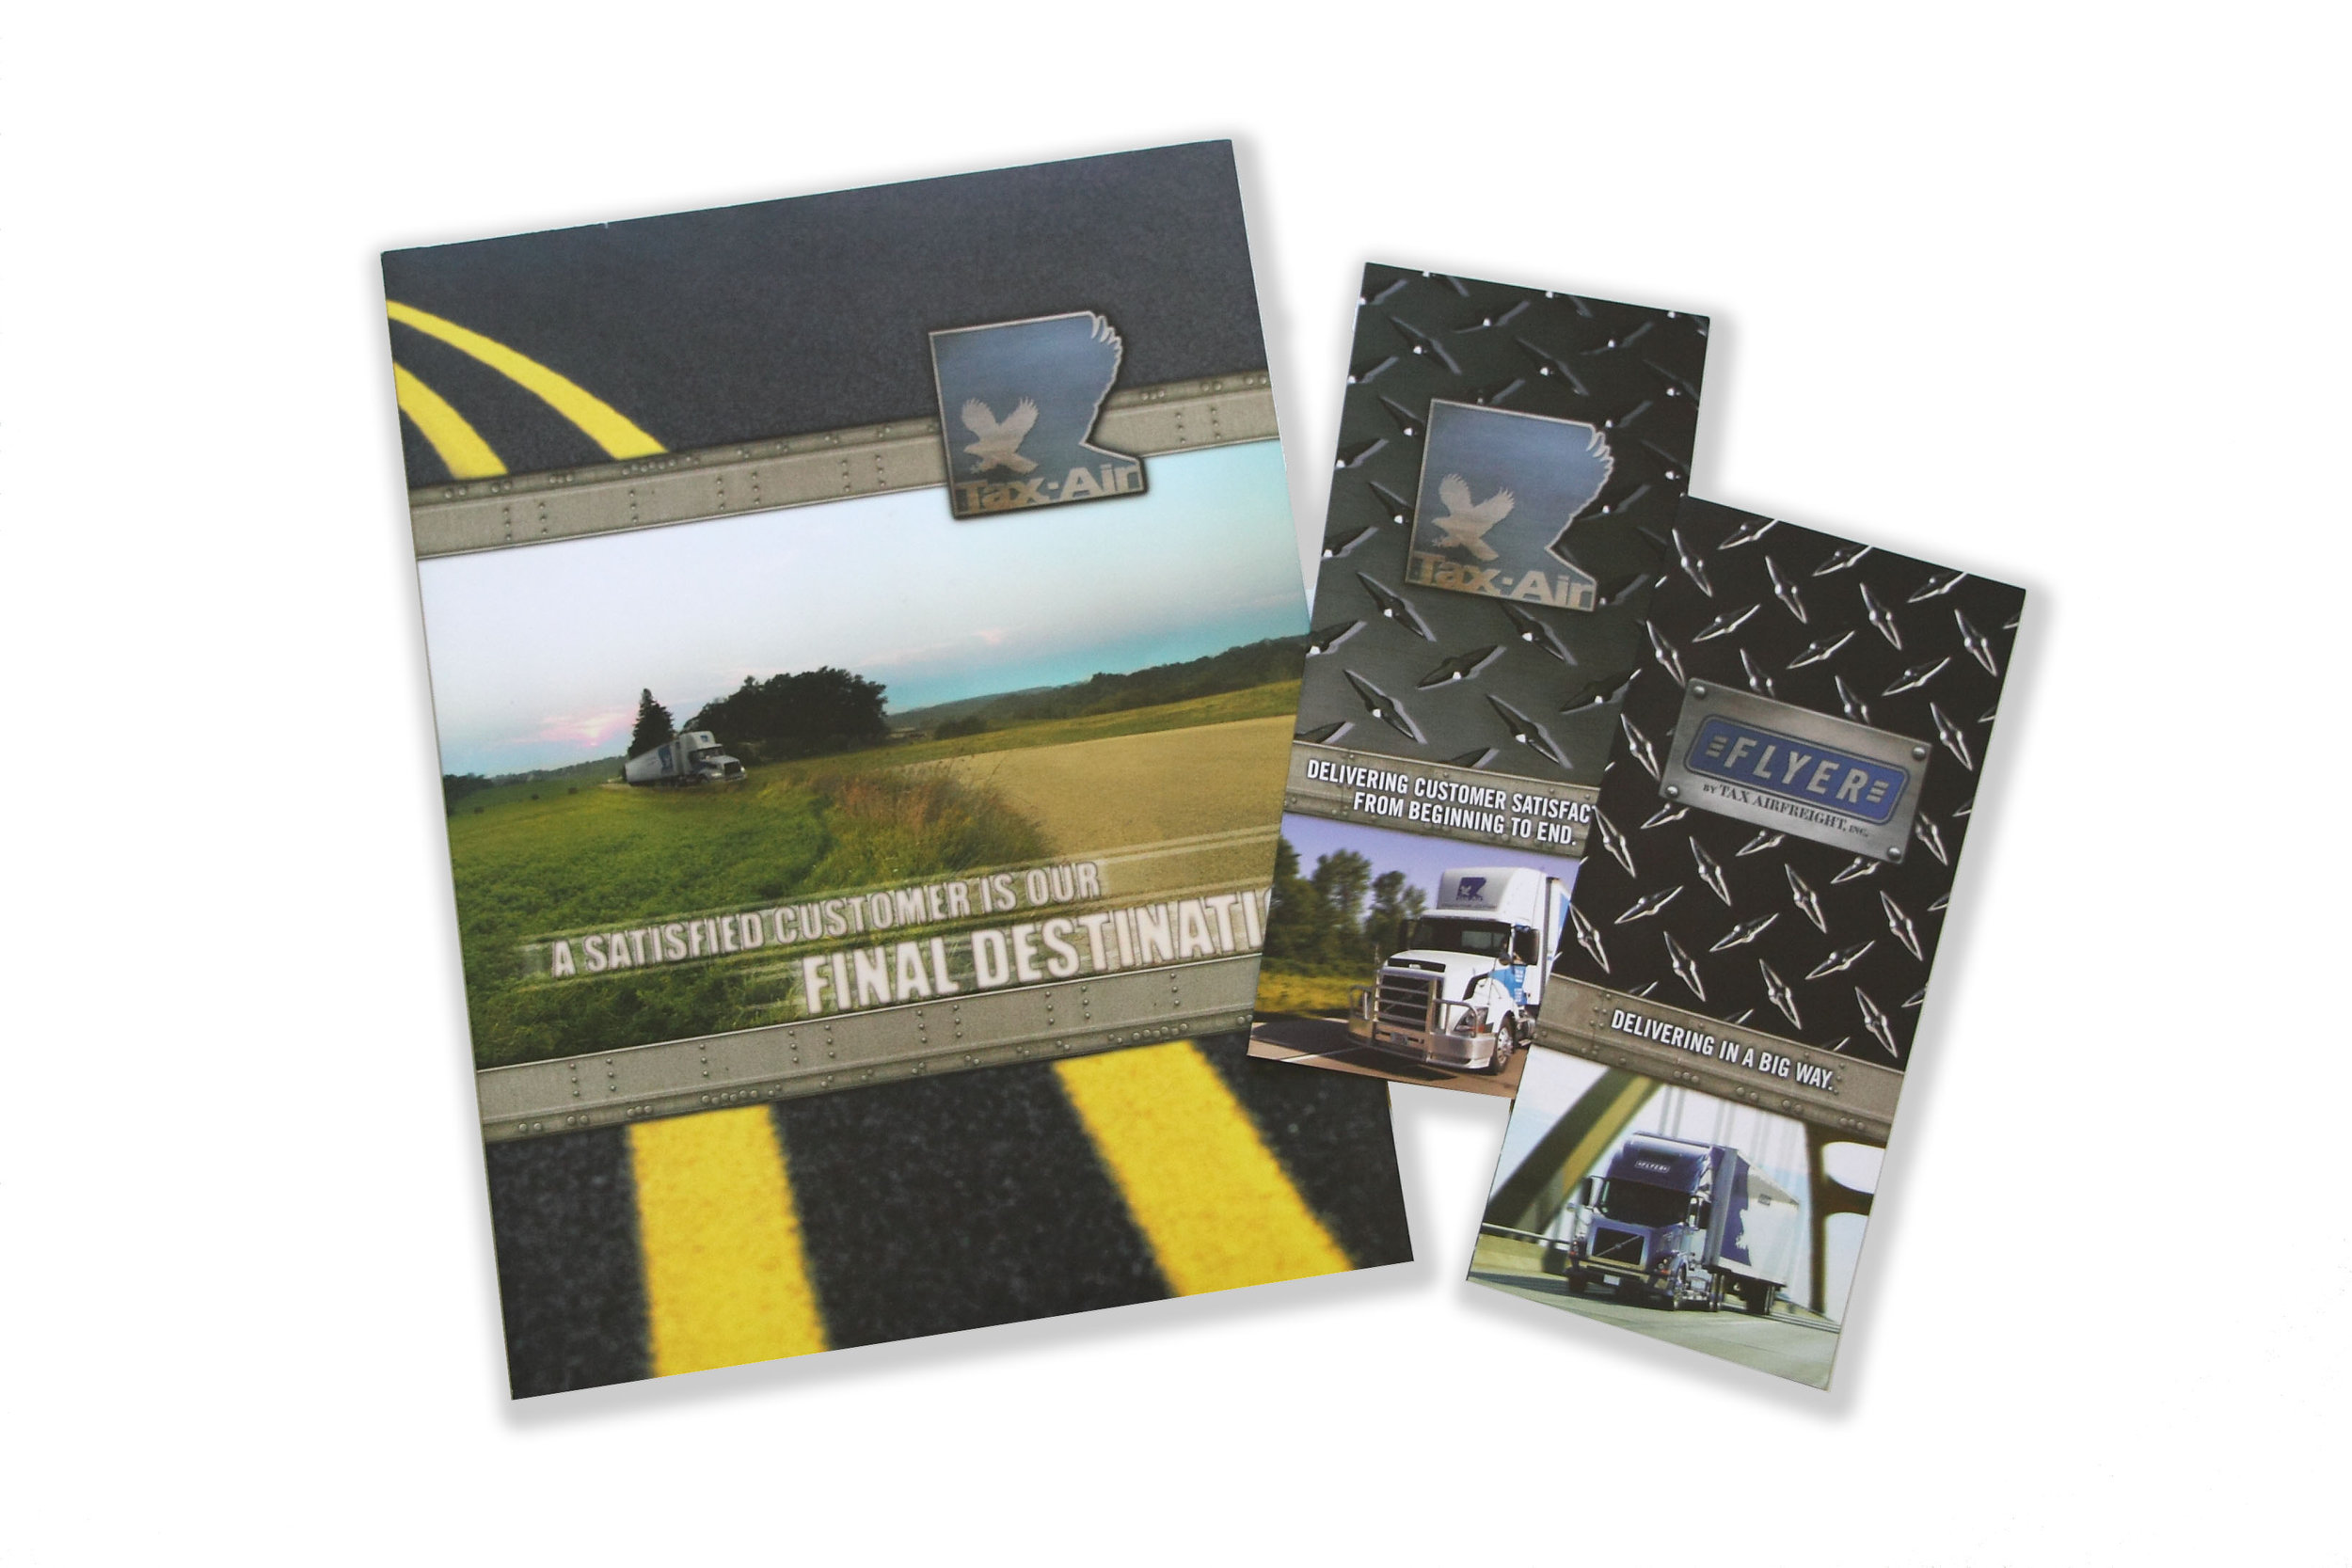 TAX-AIR 30-year-old distribution and transportation company that needed a fresh overhaul. I designed marketing tools that included new identity, sales folder, capabilities brochures, truck signage and recruiting campaign.